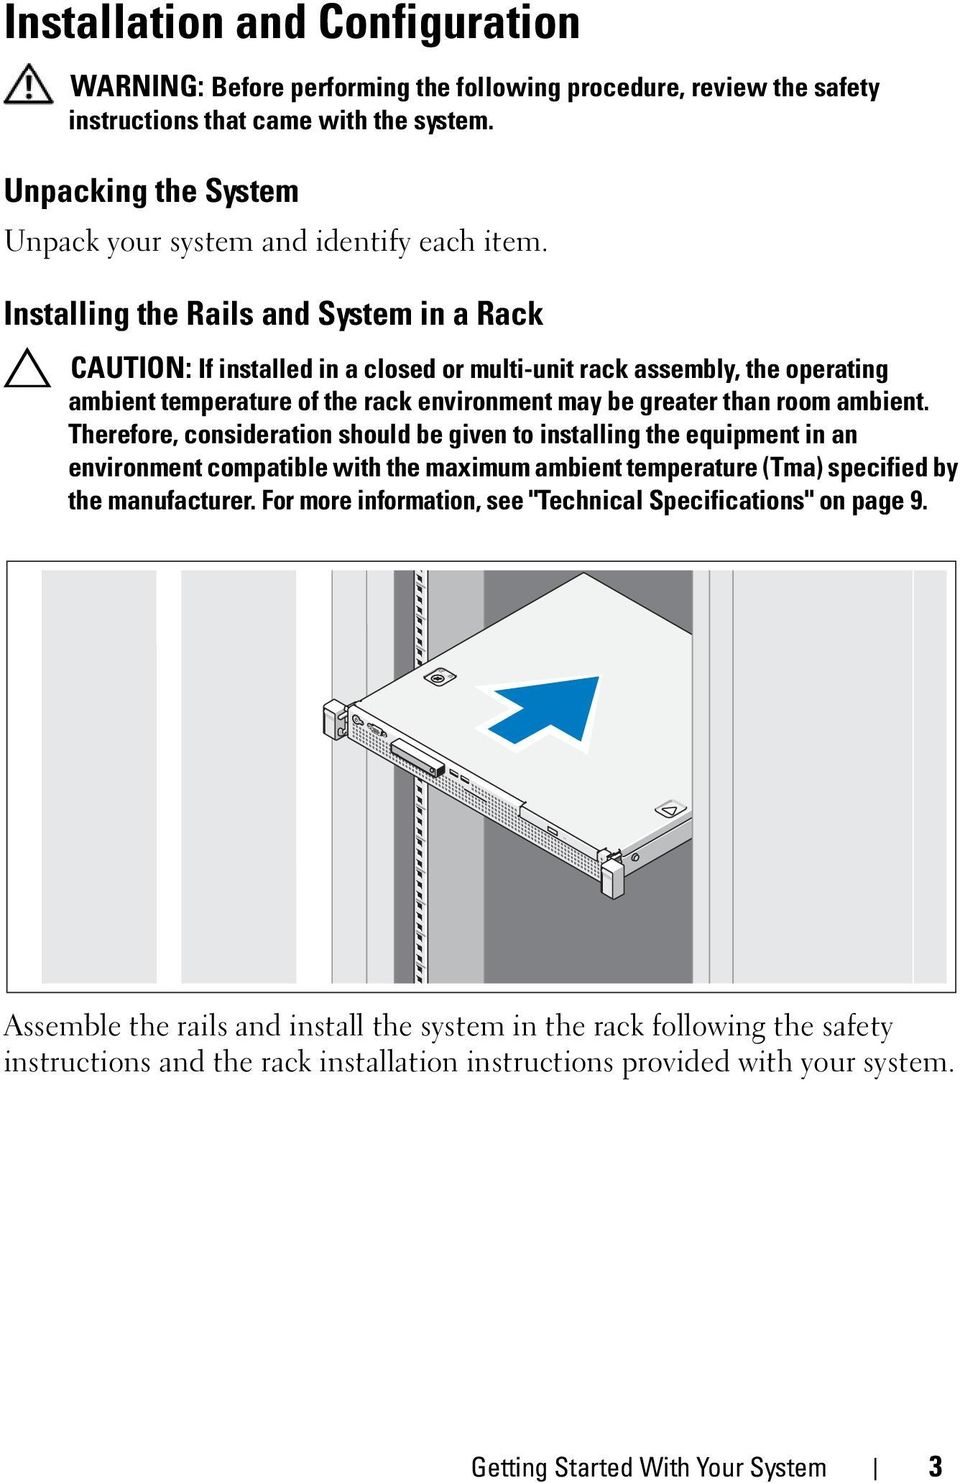 Installing the Rails and System in a Rack CAUTION: If installed in a closed or multi-unit rack assembly, the operating ambient temperature of the rack environment may be greater than room ambient.